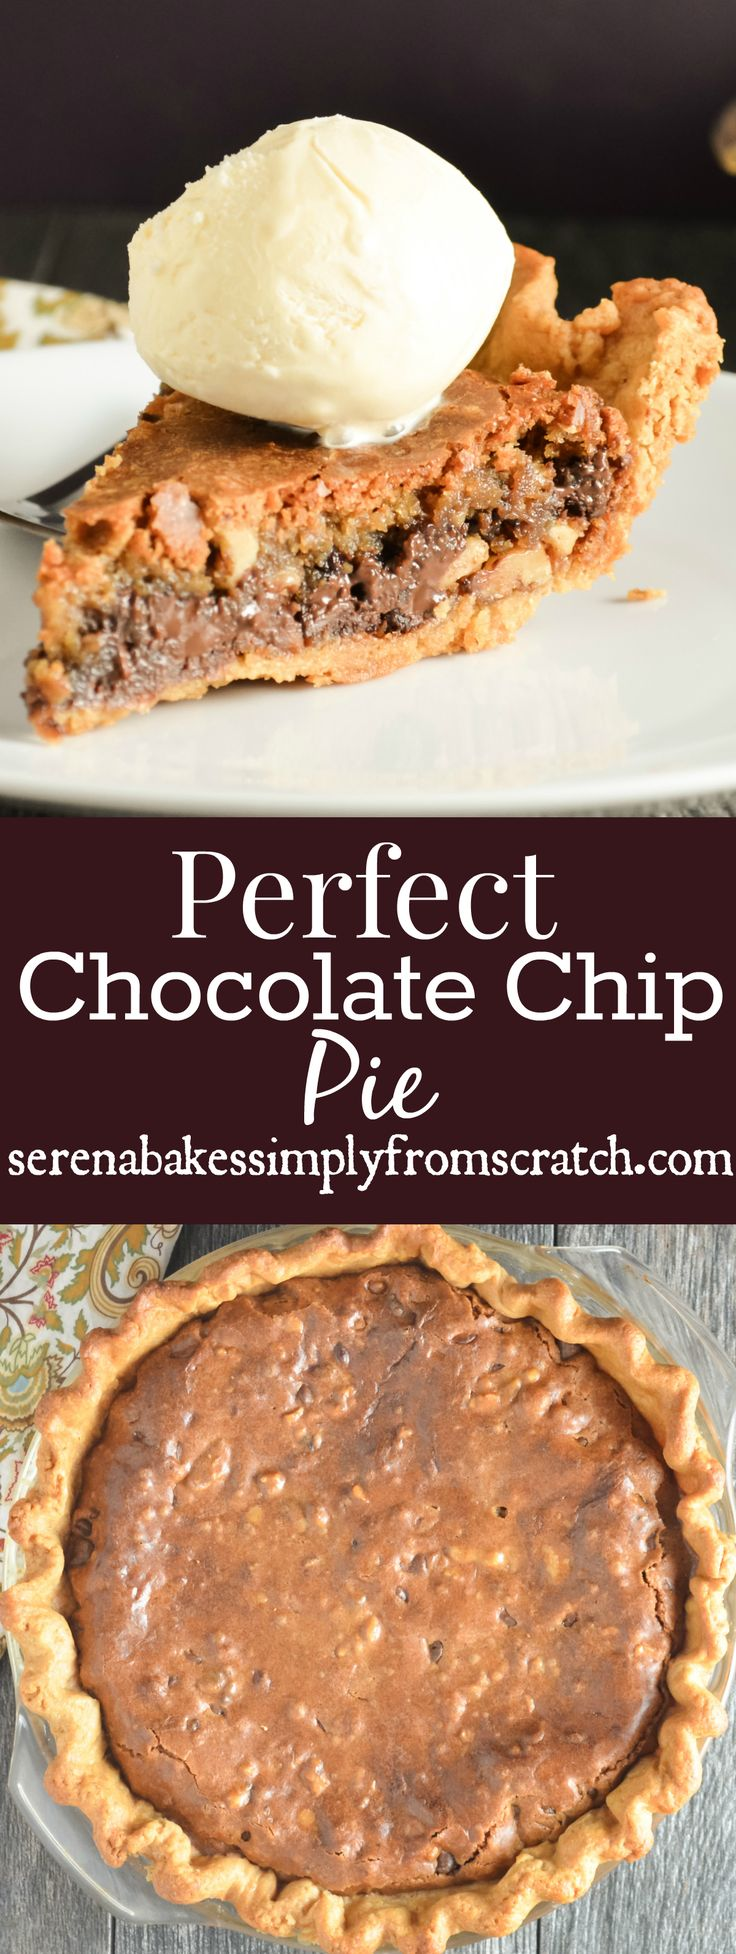 Perfect Chocolate Chip Pie takes a perfect brown butter chocolate chip cookie cookie to perfection with a crispy outside and soft gooey center baked in a flaky pie crust. serenabakessimplyfromscratch.com